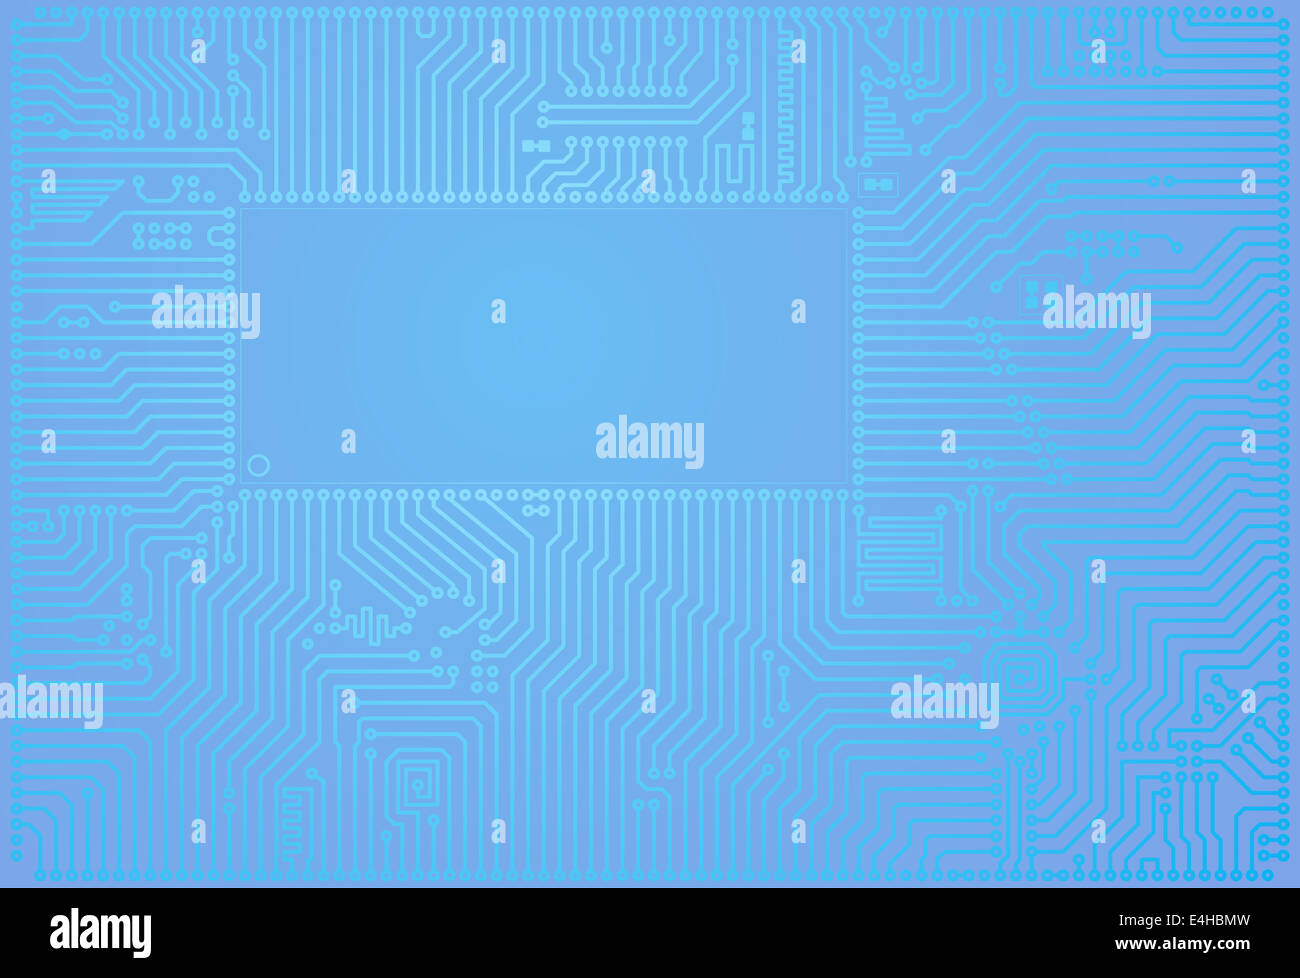 Hi Tech Wallpaper Stock Photos Images Alamy Custom Design On Circuit Board Horizontal Abstract Blue Background Image